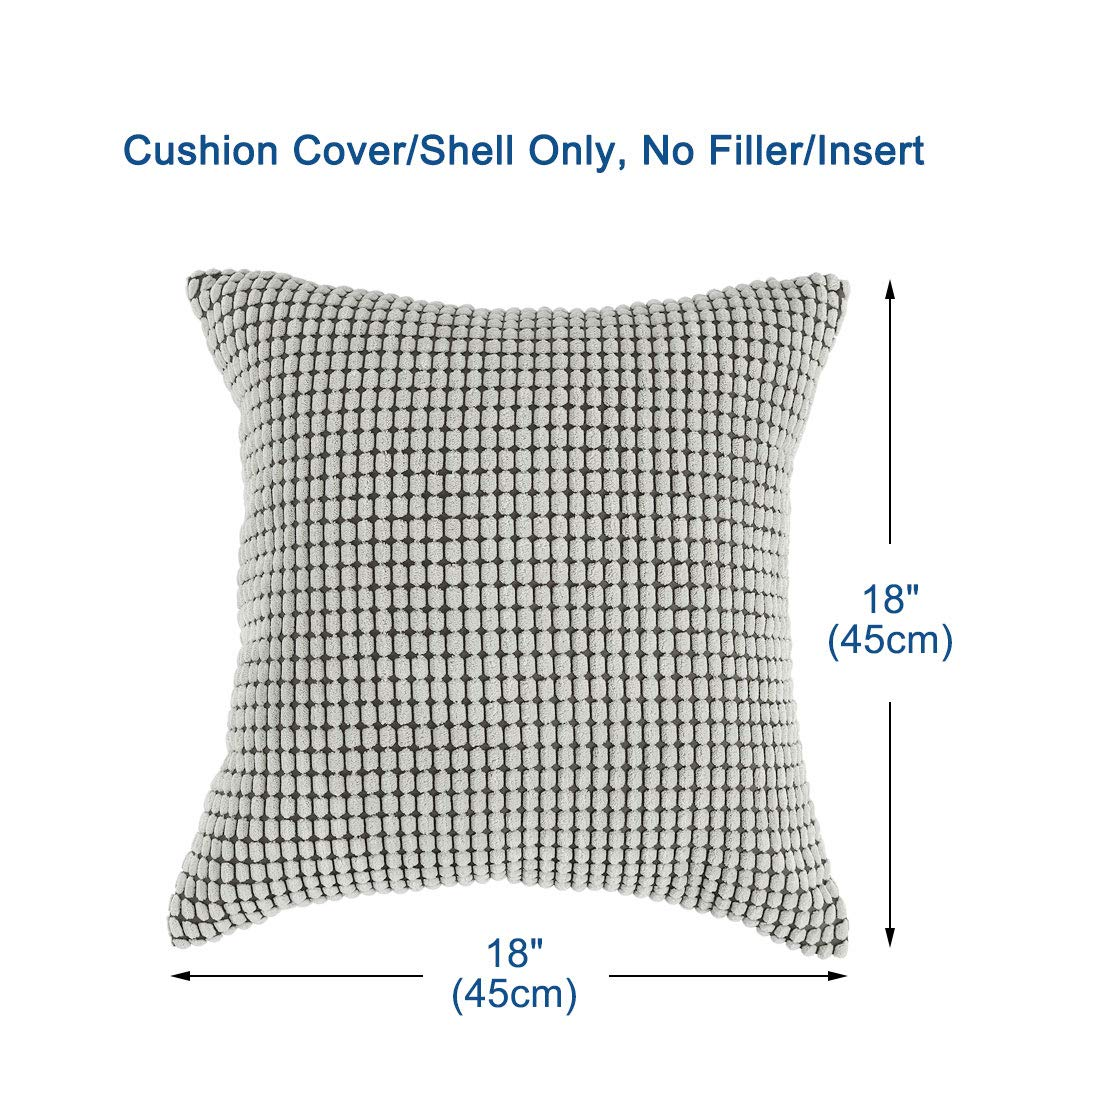 PiccoCasa Pack of 4 Decorative Christmas Throw Pillow Covers Set Soft Velvet Corduroy Pillowcase Cushion Covers for Sofa Couch Bed Light Gray 20 x 20